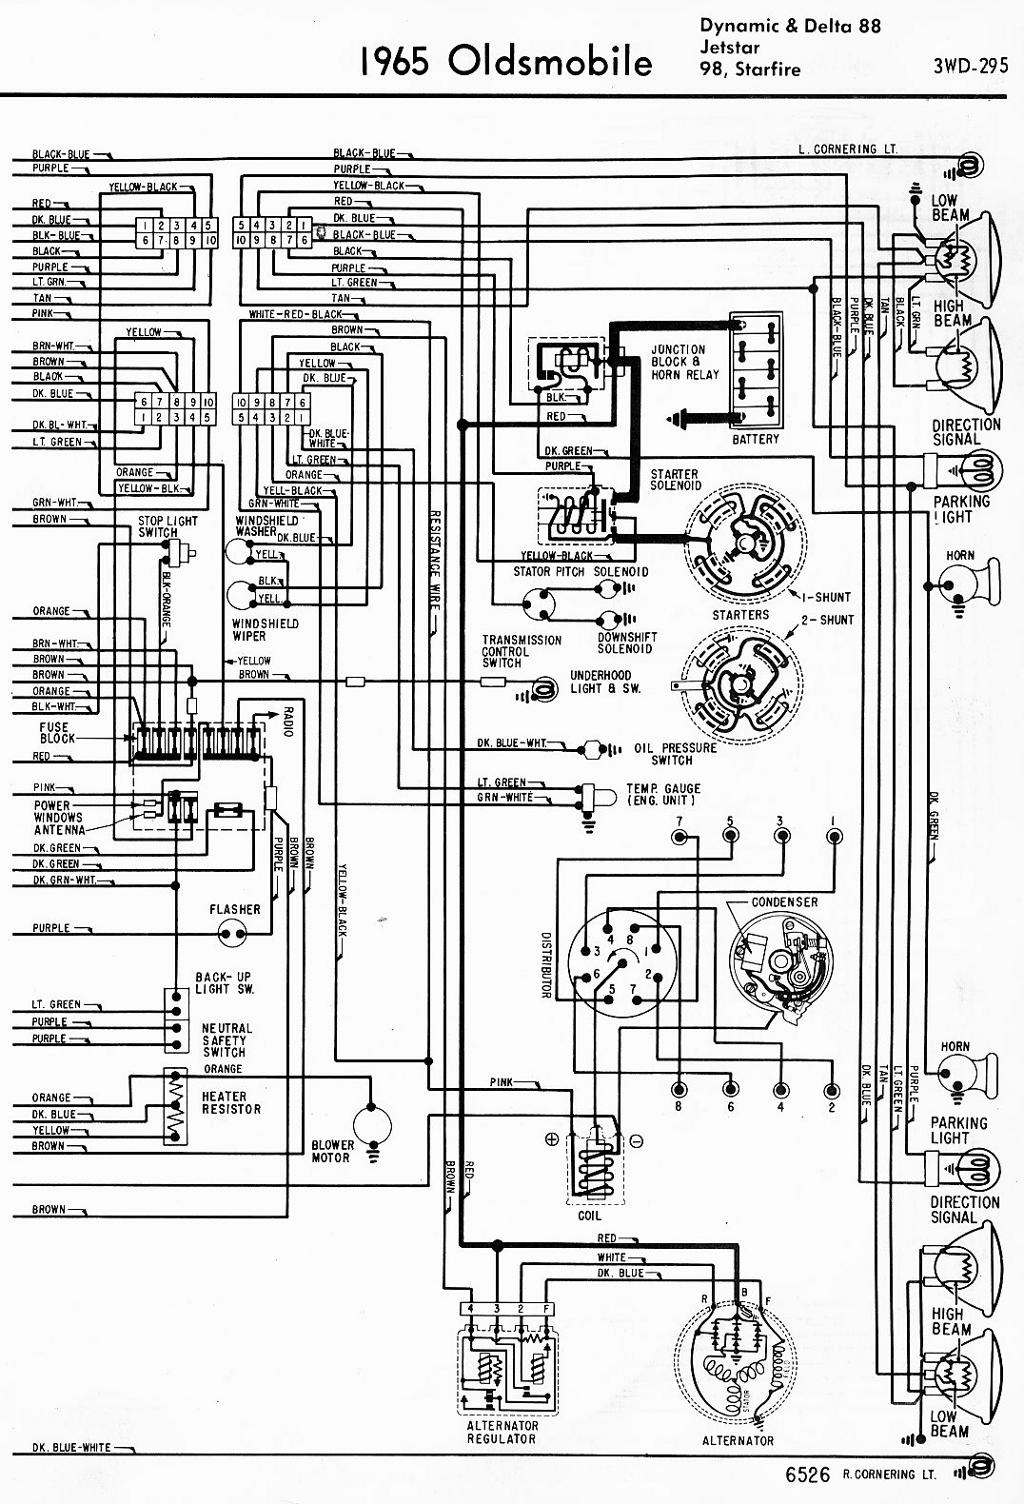 ezgo golf cart wiring diagram for 98 98 ez go wiring diagram download #1